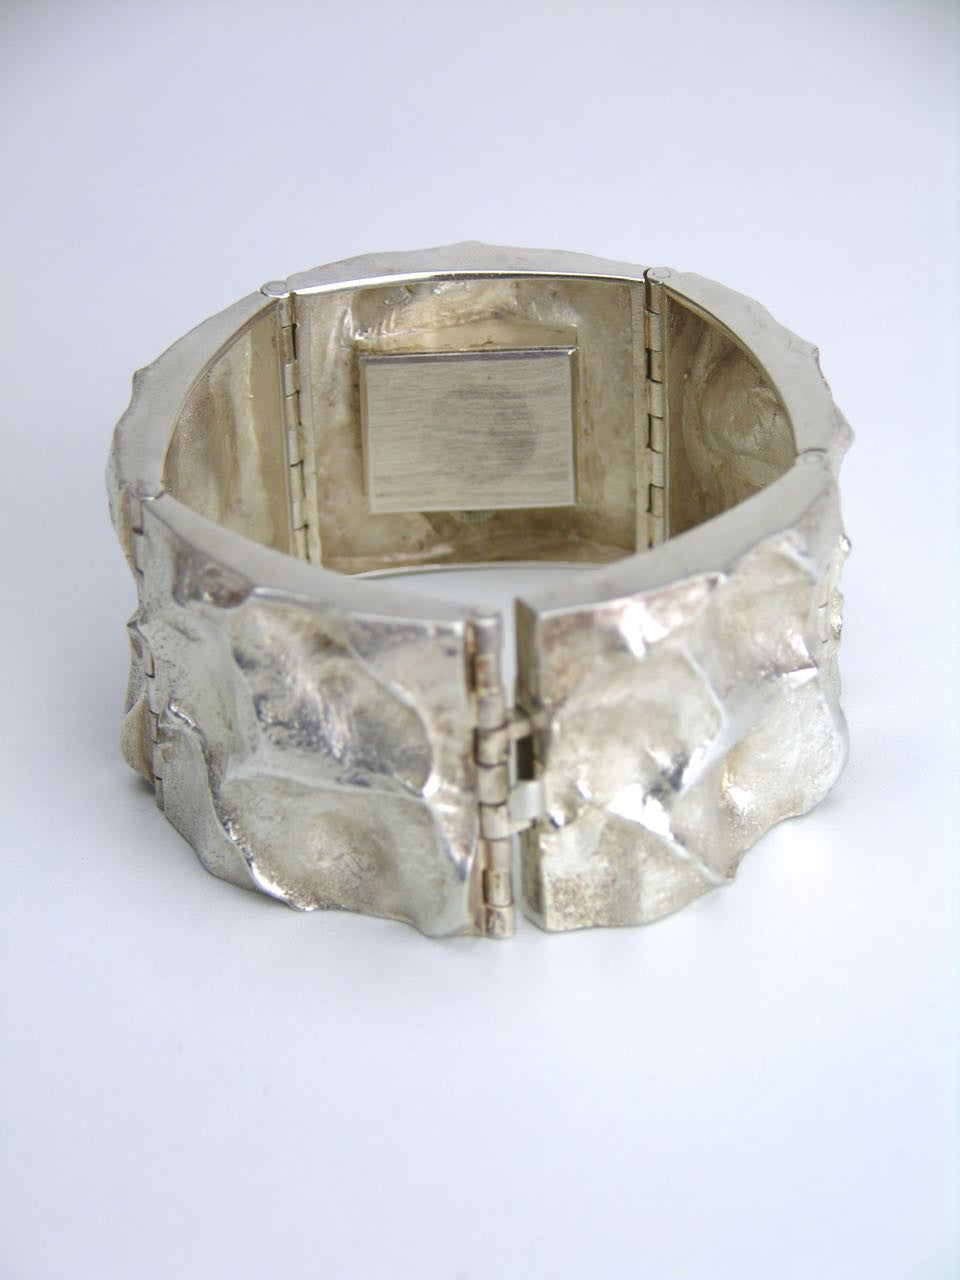 Matti Hyvarinen silver textured bracelet watch